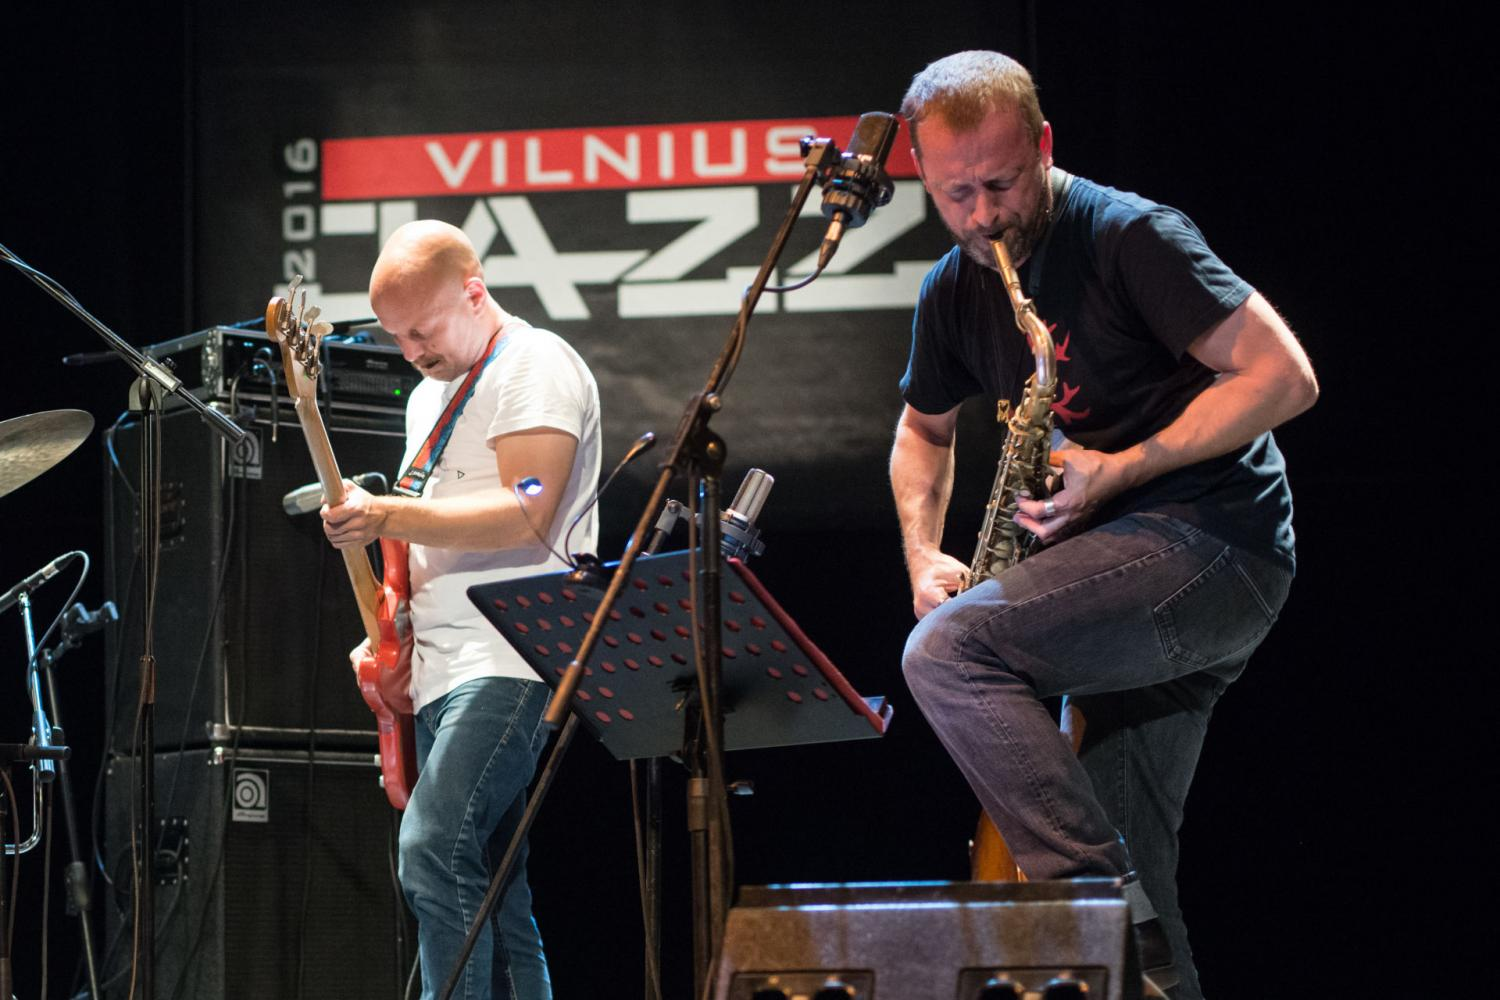 The Thing at Vilnius Jazz 2016